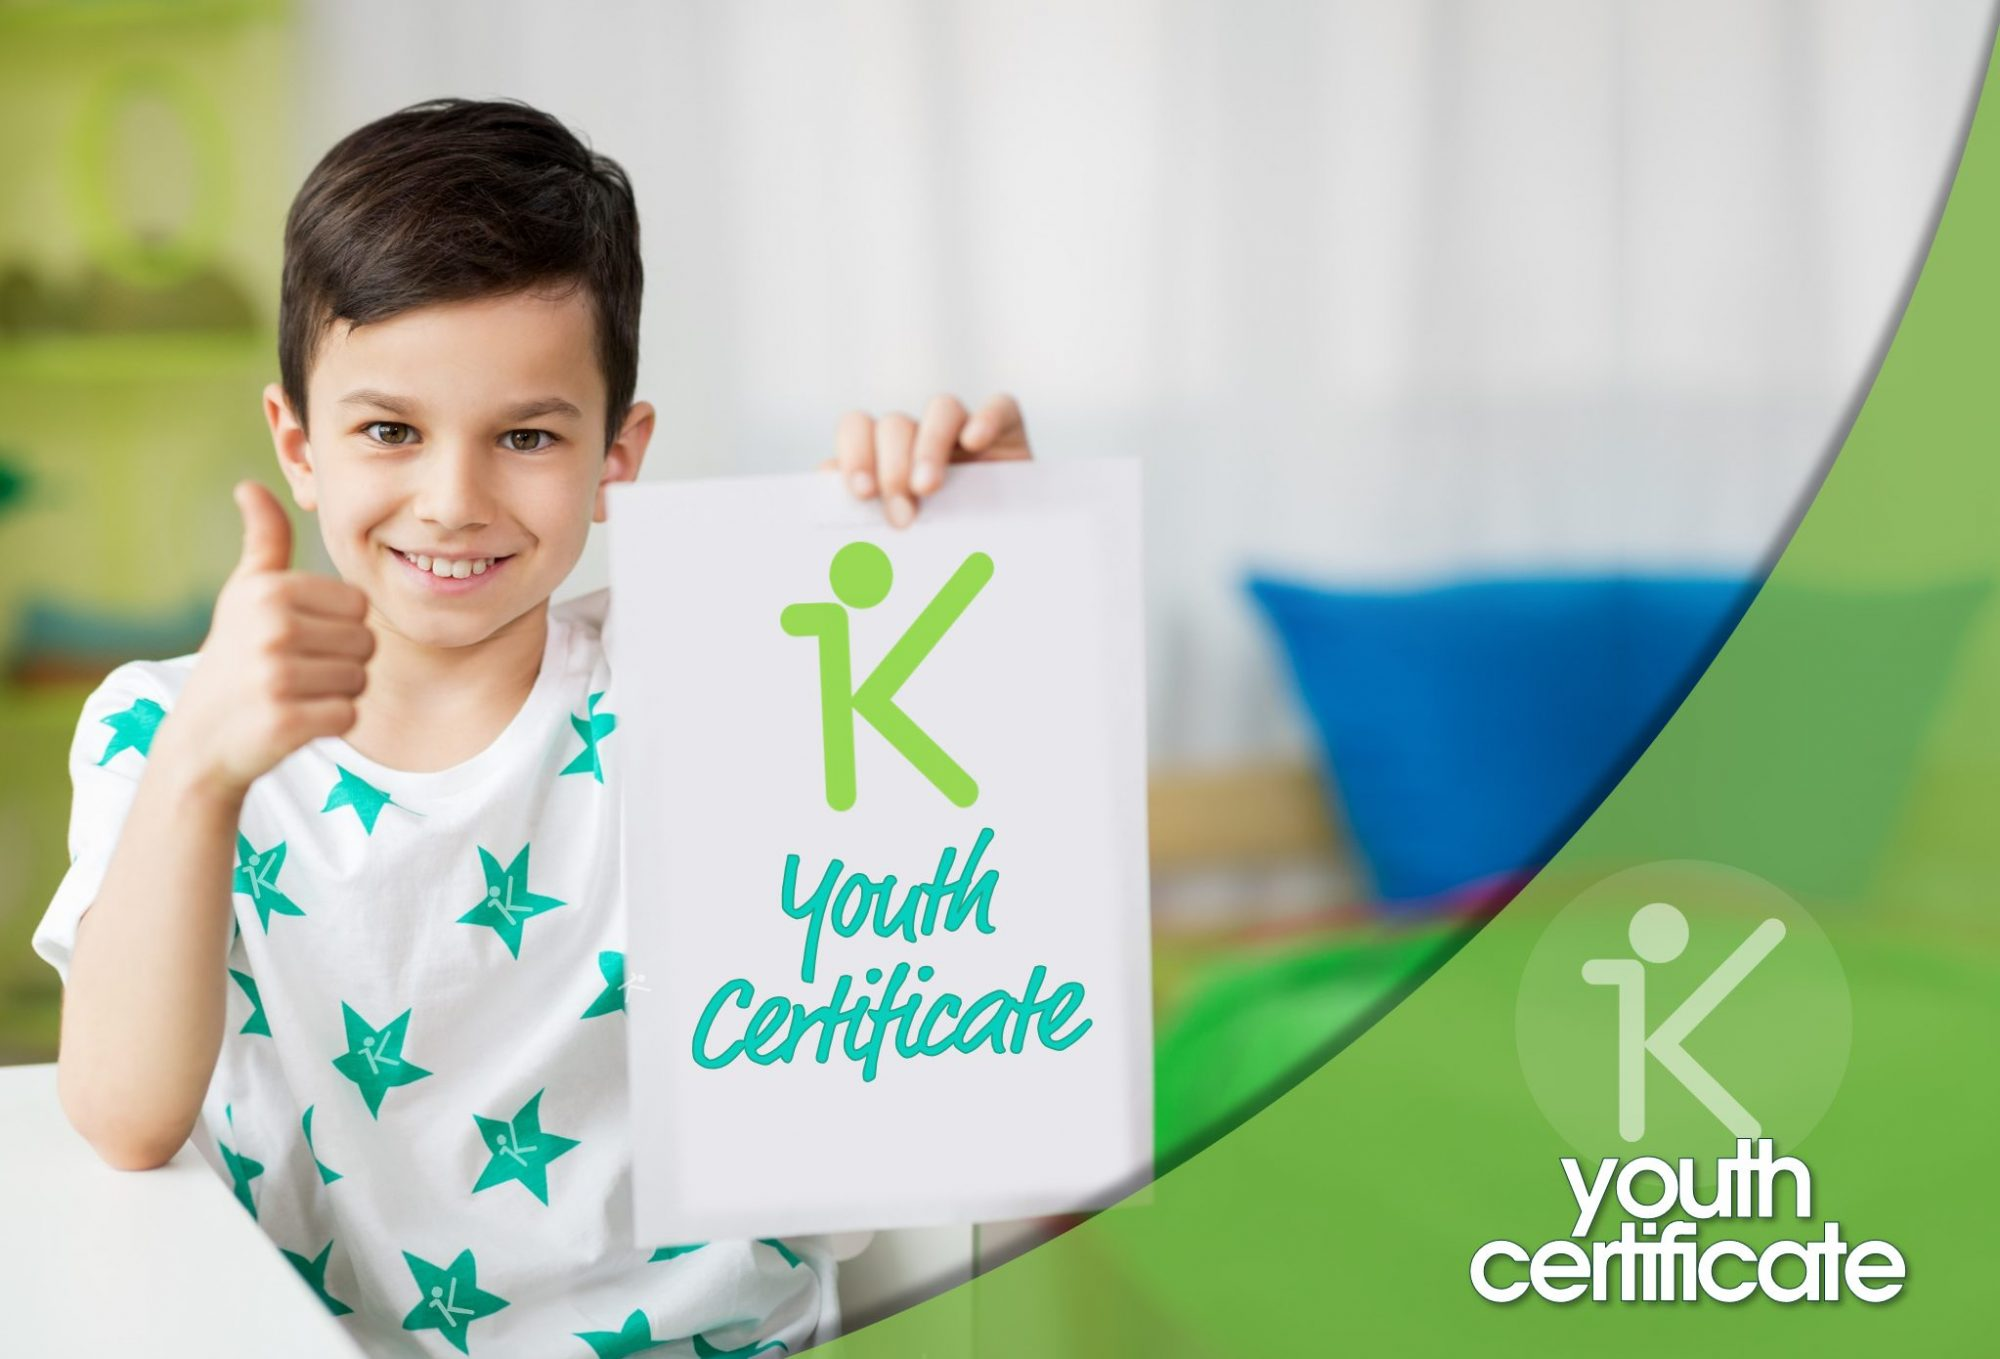 youth certificate